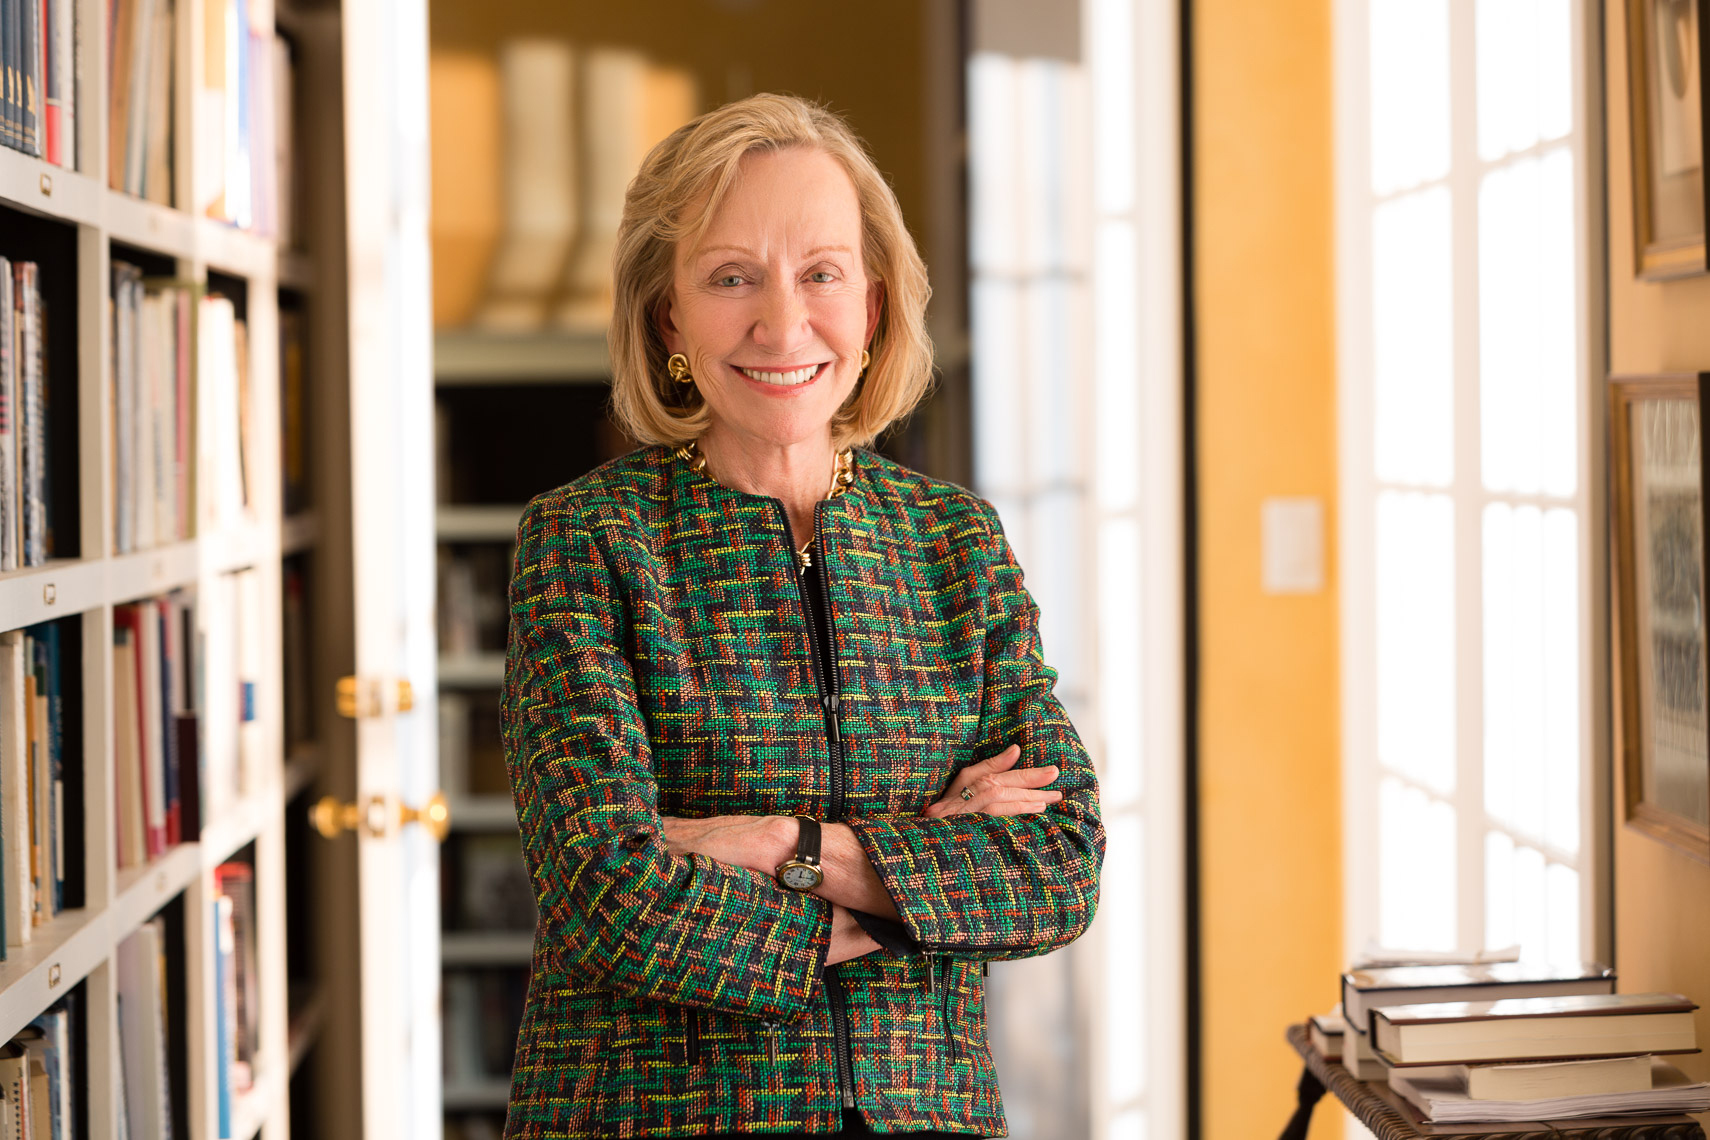 DORIS KEARNS GOODWIN - HISTORIAN • AARP • JASON GROW PHOTOGRAPHY